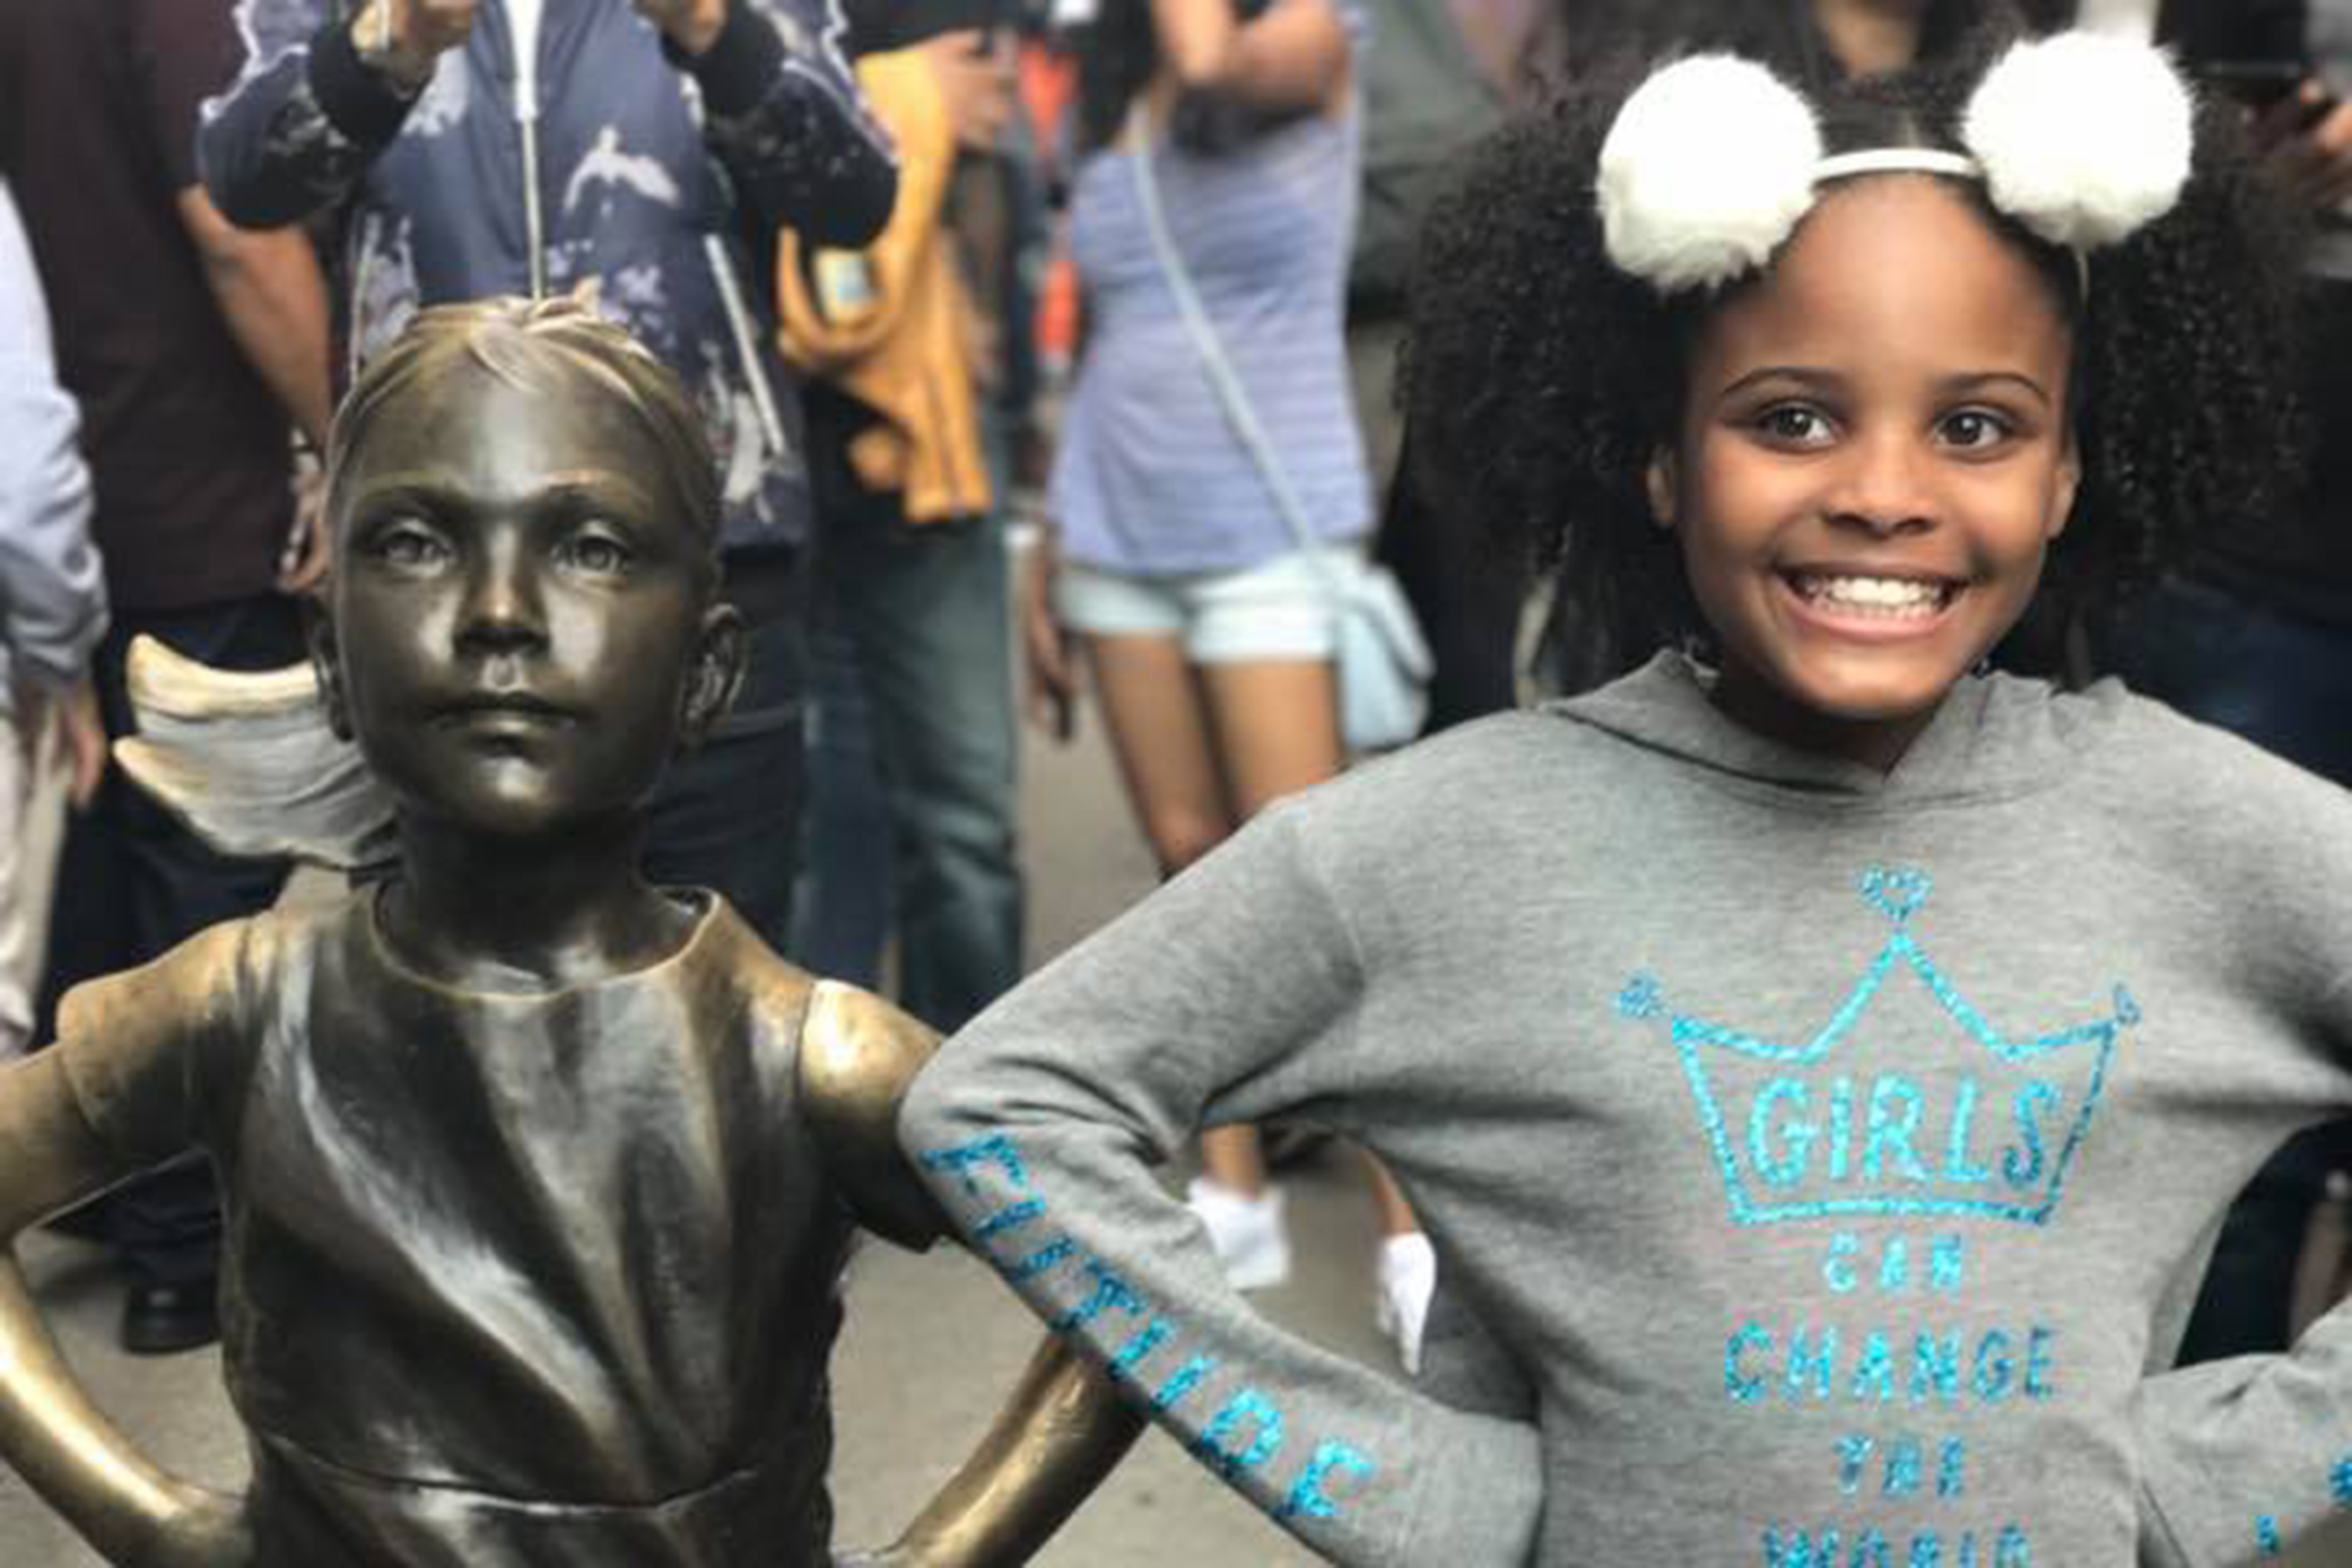 Mari Copeny, Little Miss Flint, poses next to the Fearless Girl statue on Wall Street in lower Manhattan, New York City, New York.